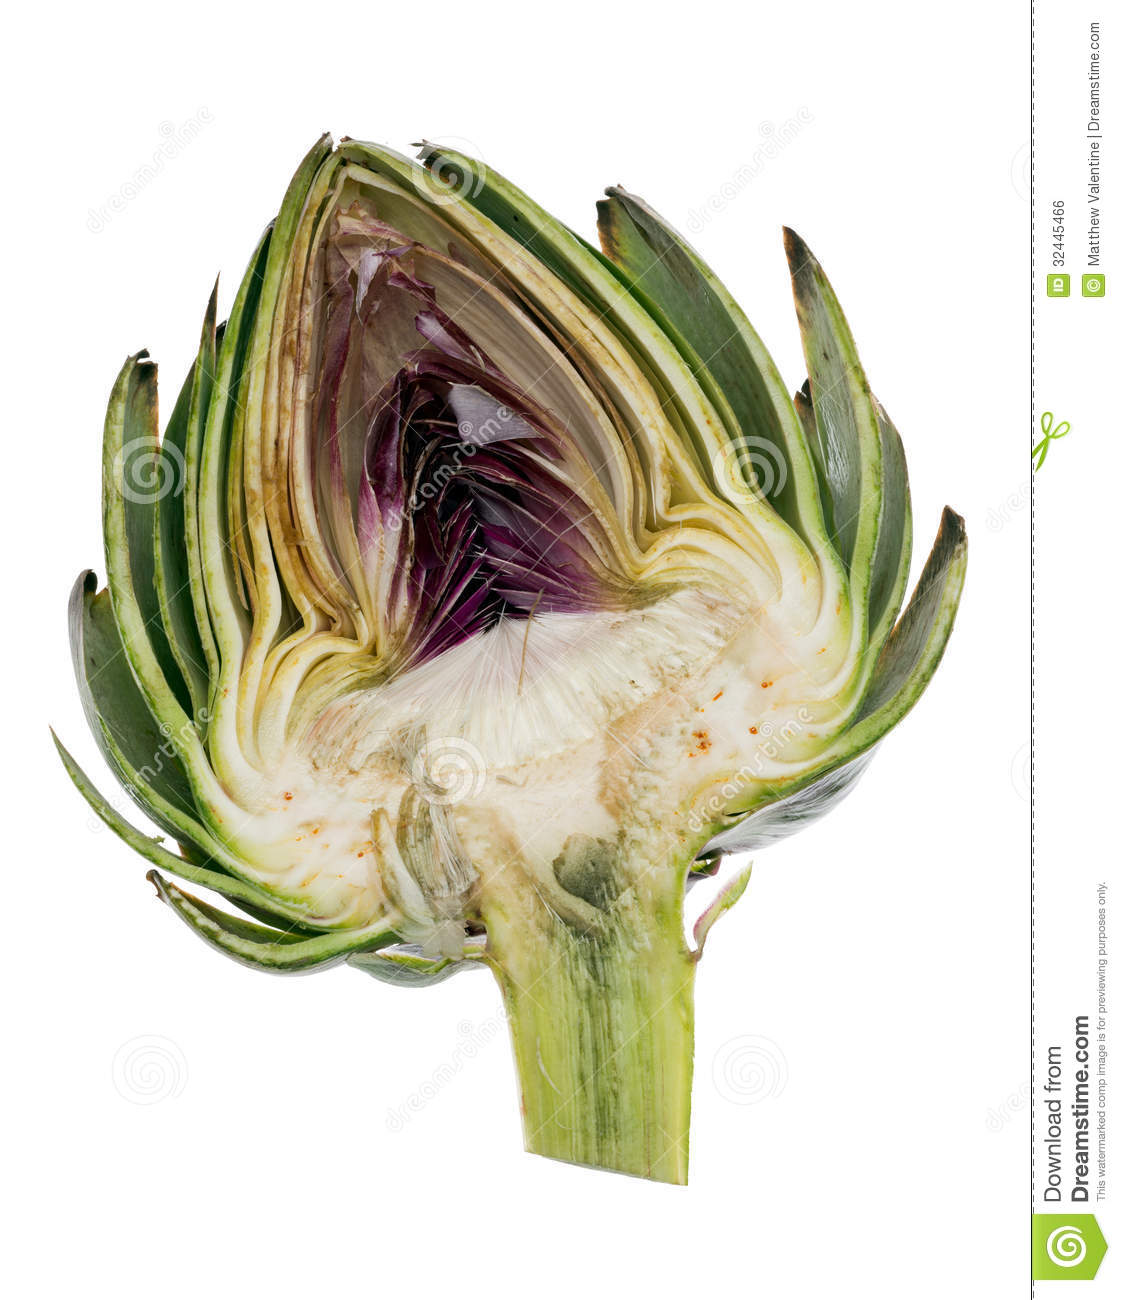 Cross Section Of Artichoke Isolated Over A Pure White